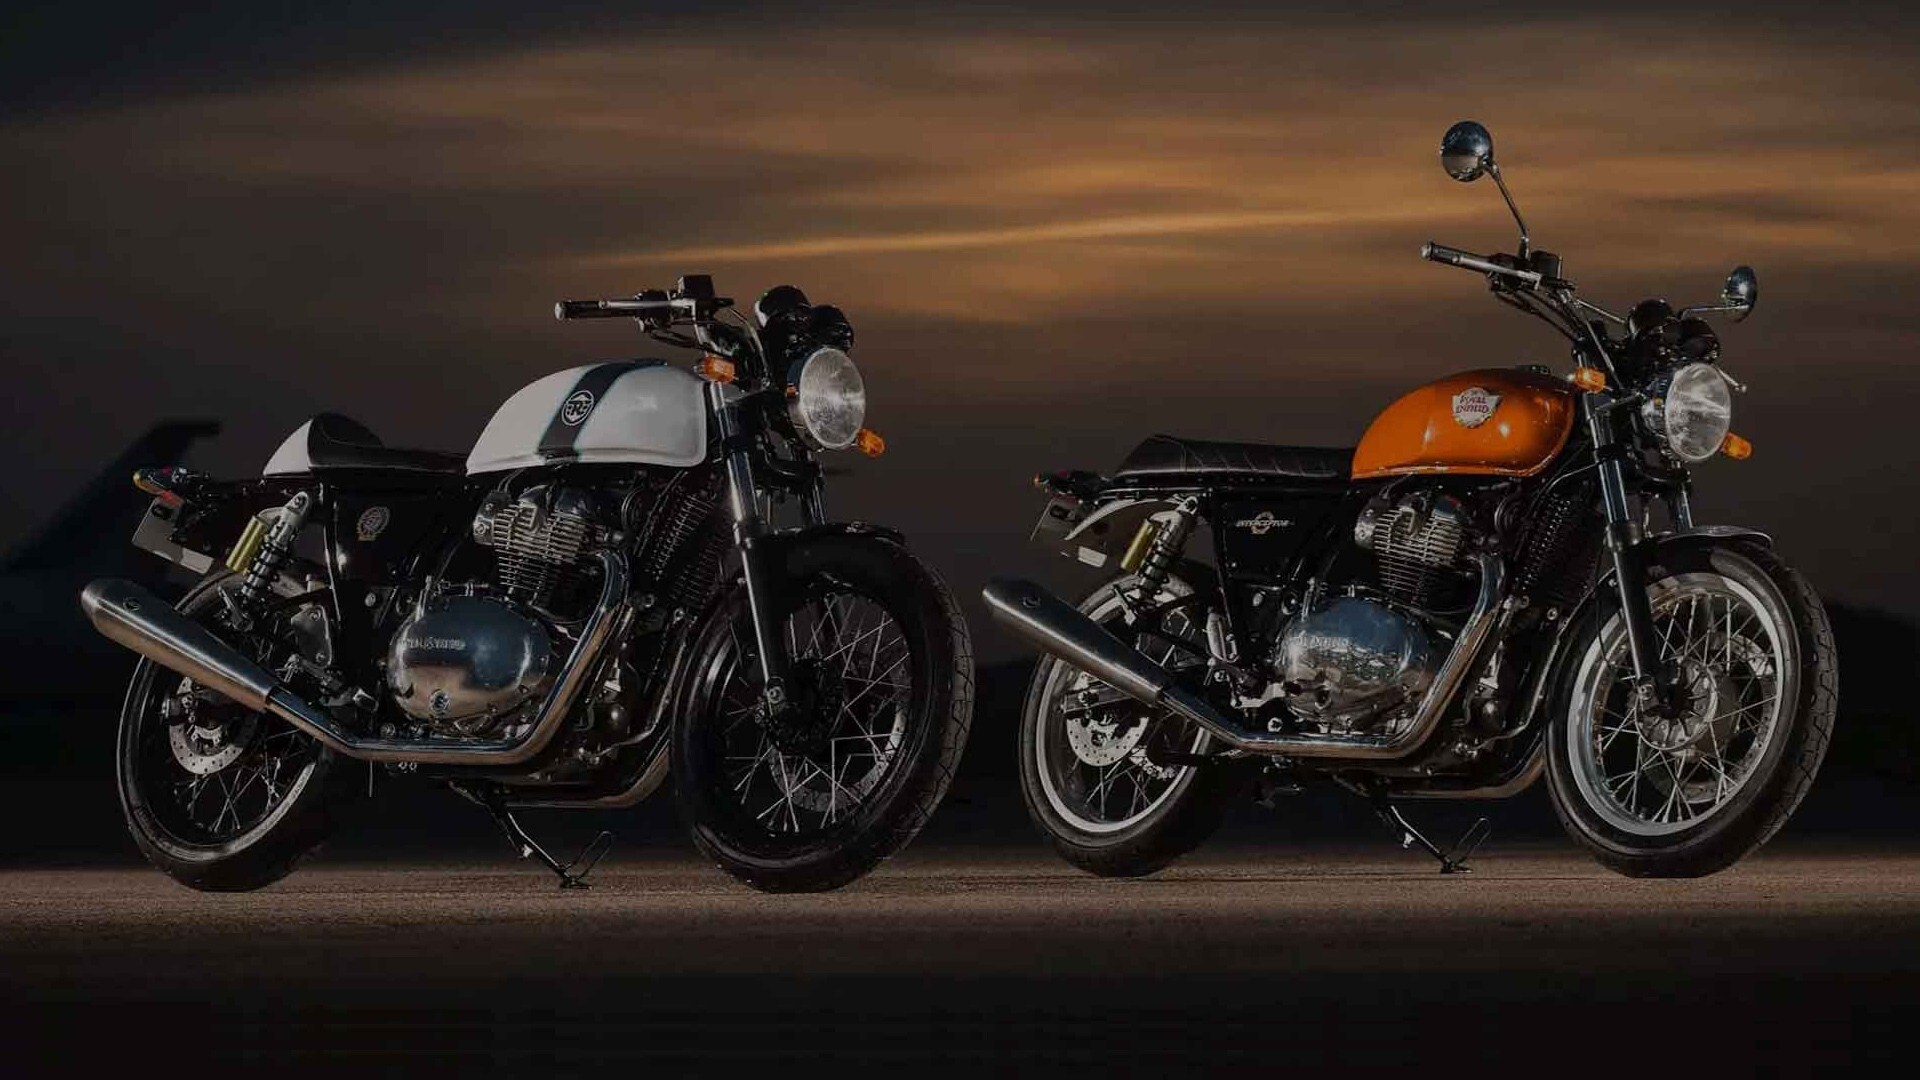 2018 Royal Enfield Interceptor 650 And Continental Gt 650 Bike Hd